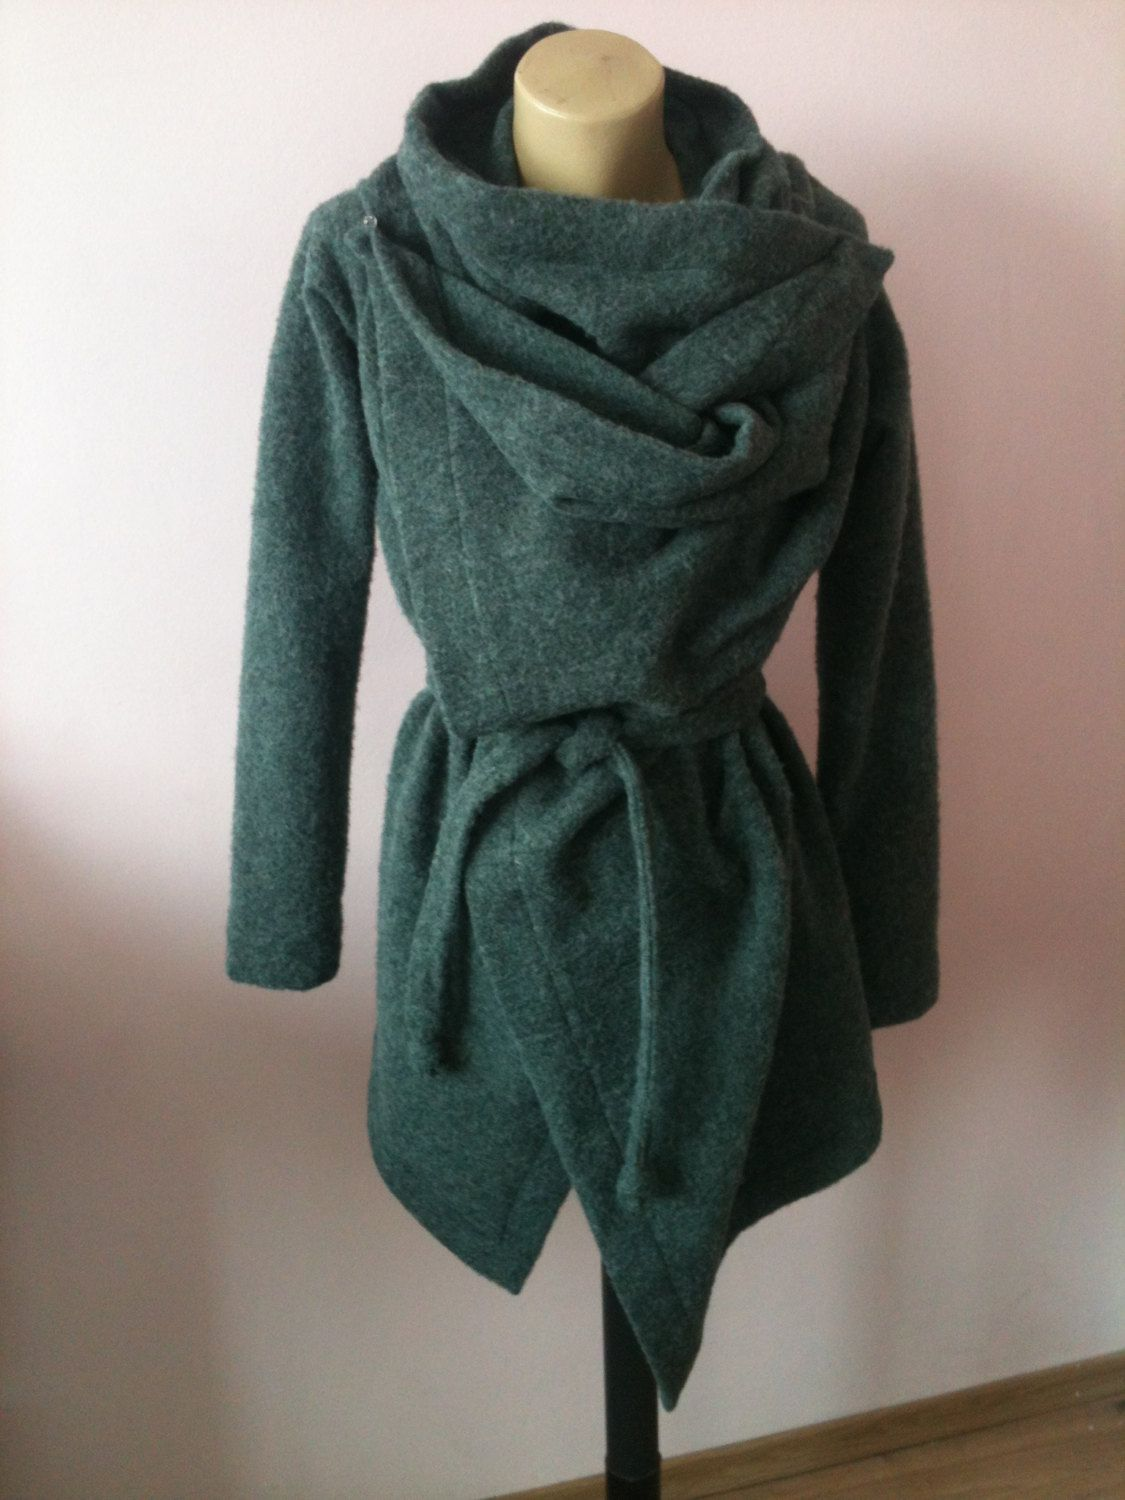 Wool wrap coat-cardigan size S M by StudioMariya on Etsy Me  if I have a  schematic or can see it open 328b0aa56